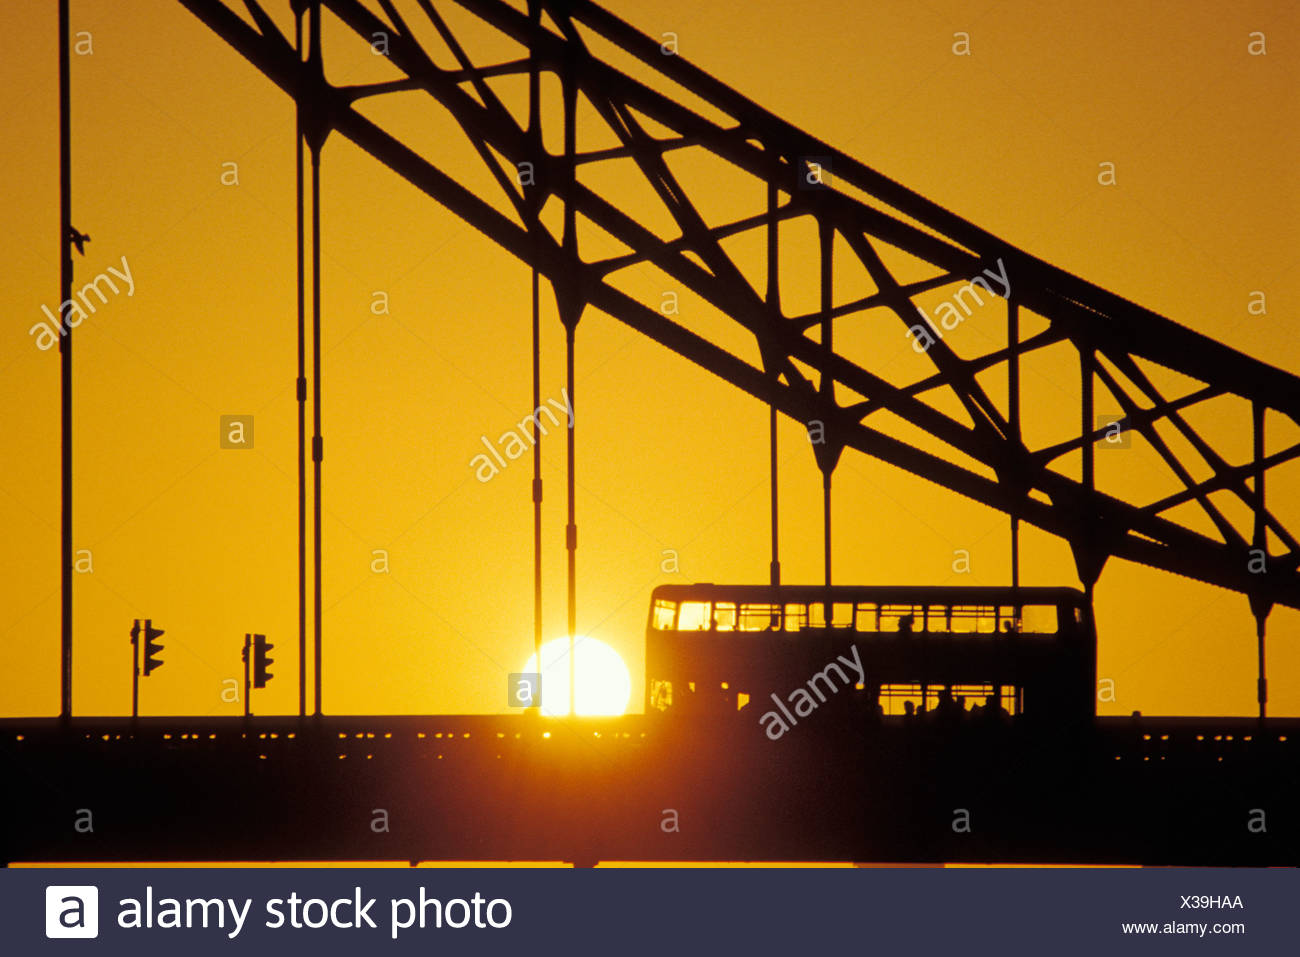 Silhouette of suspension bridge and double decker bus with sunset in background - Stock Image